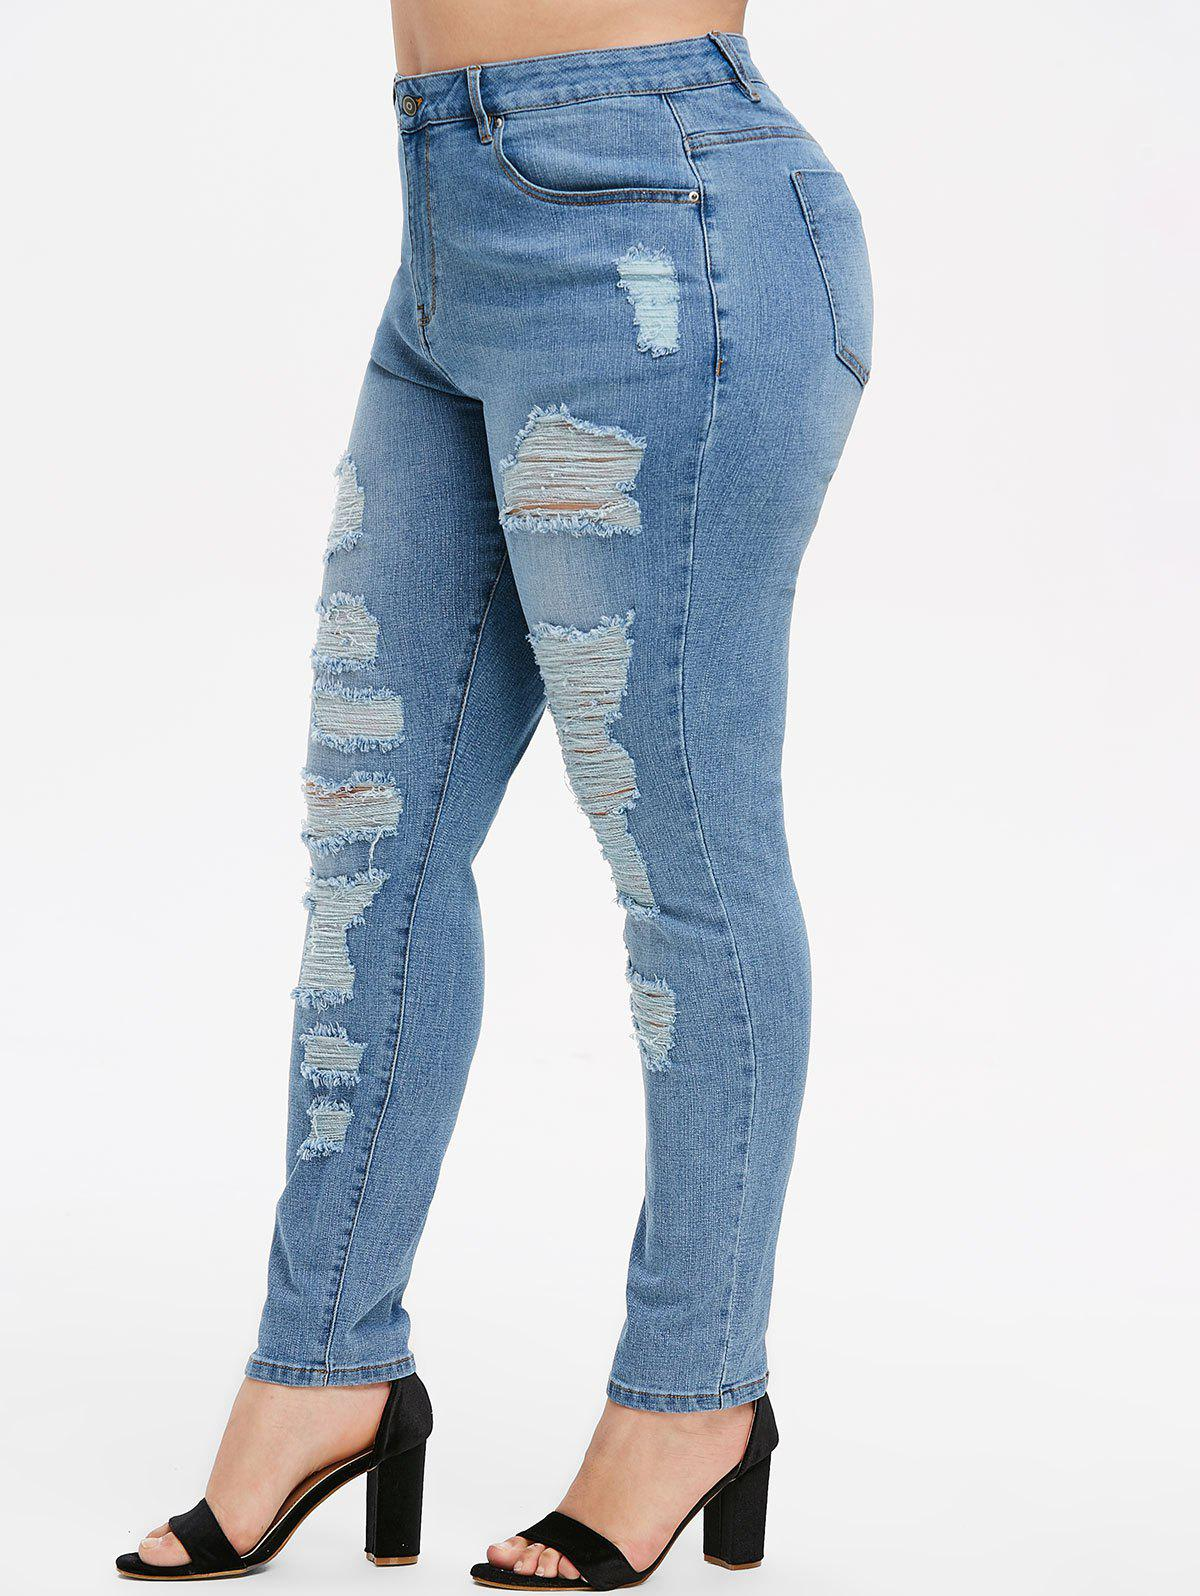 Distressed Plus Size Skinny High Waisted Jeans - JEANS BLUE 5X